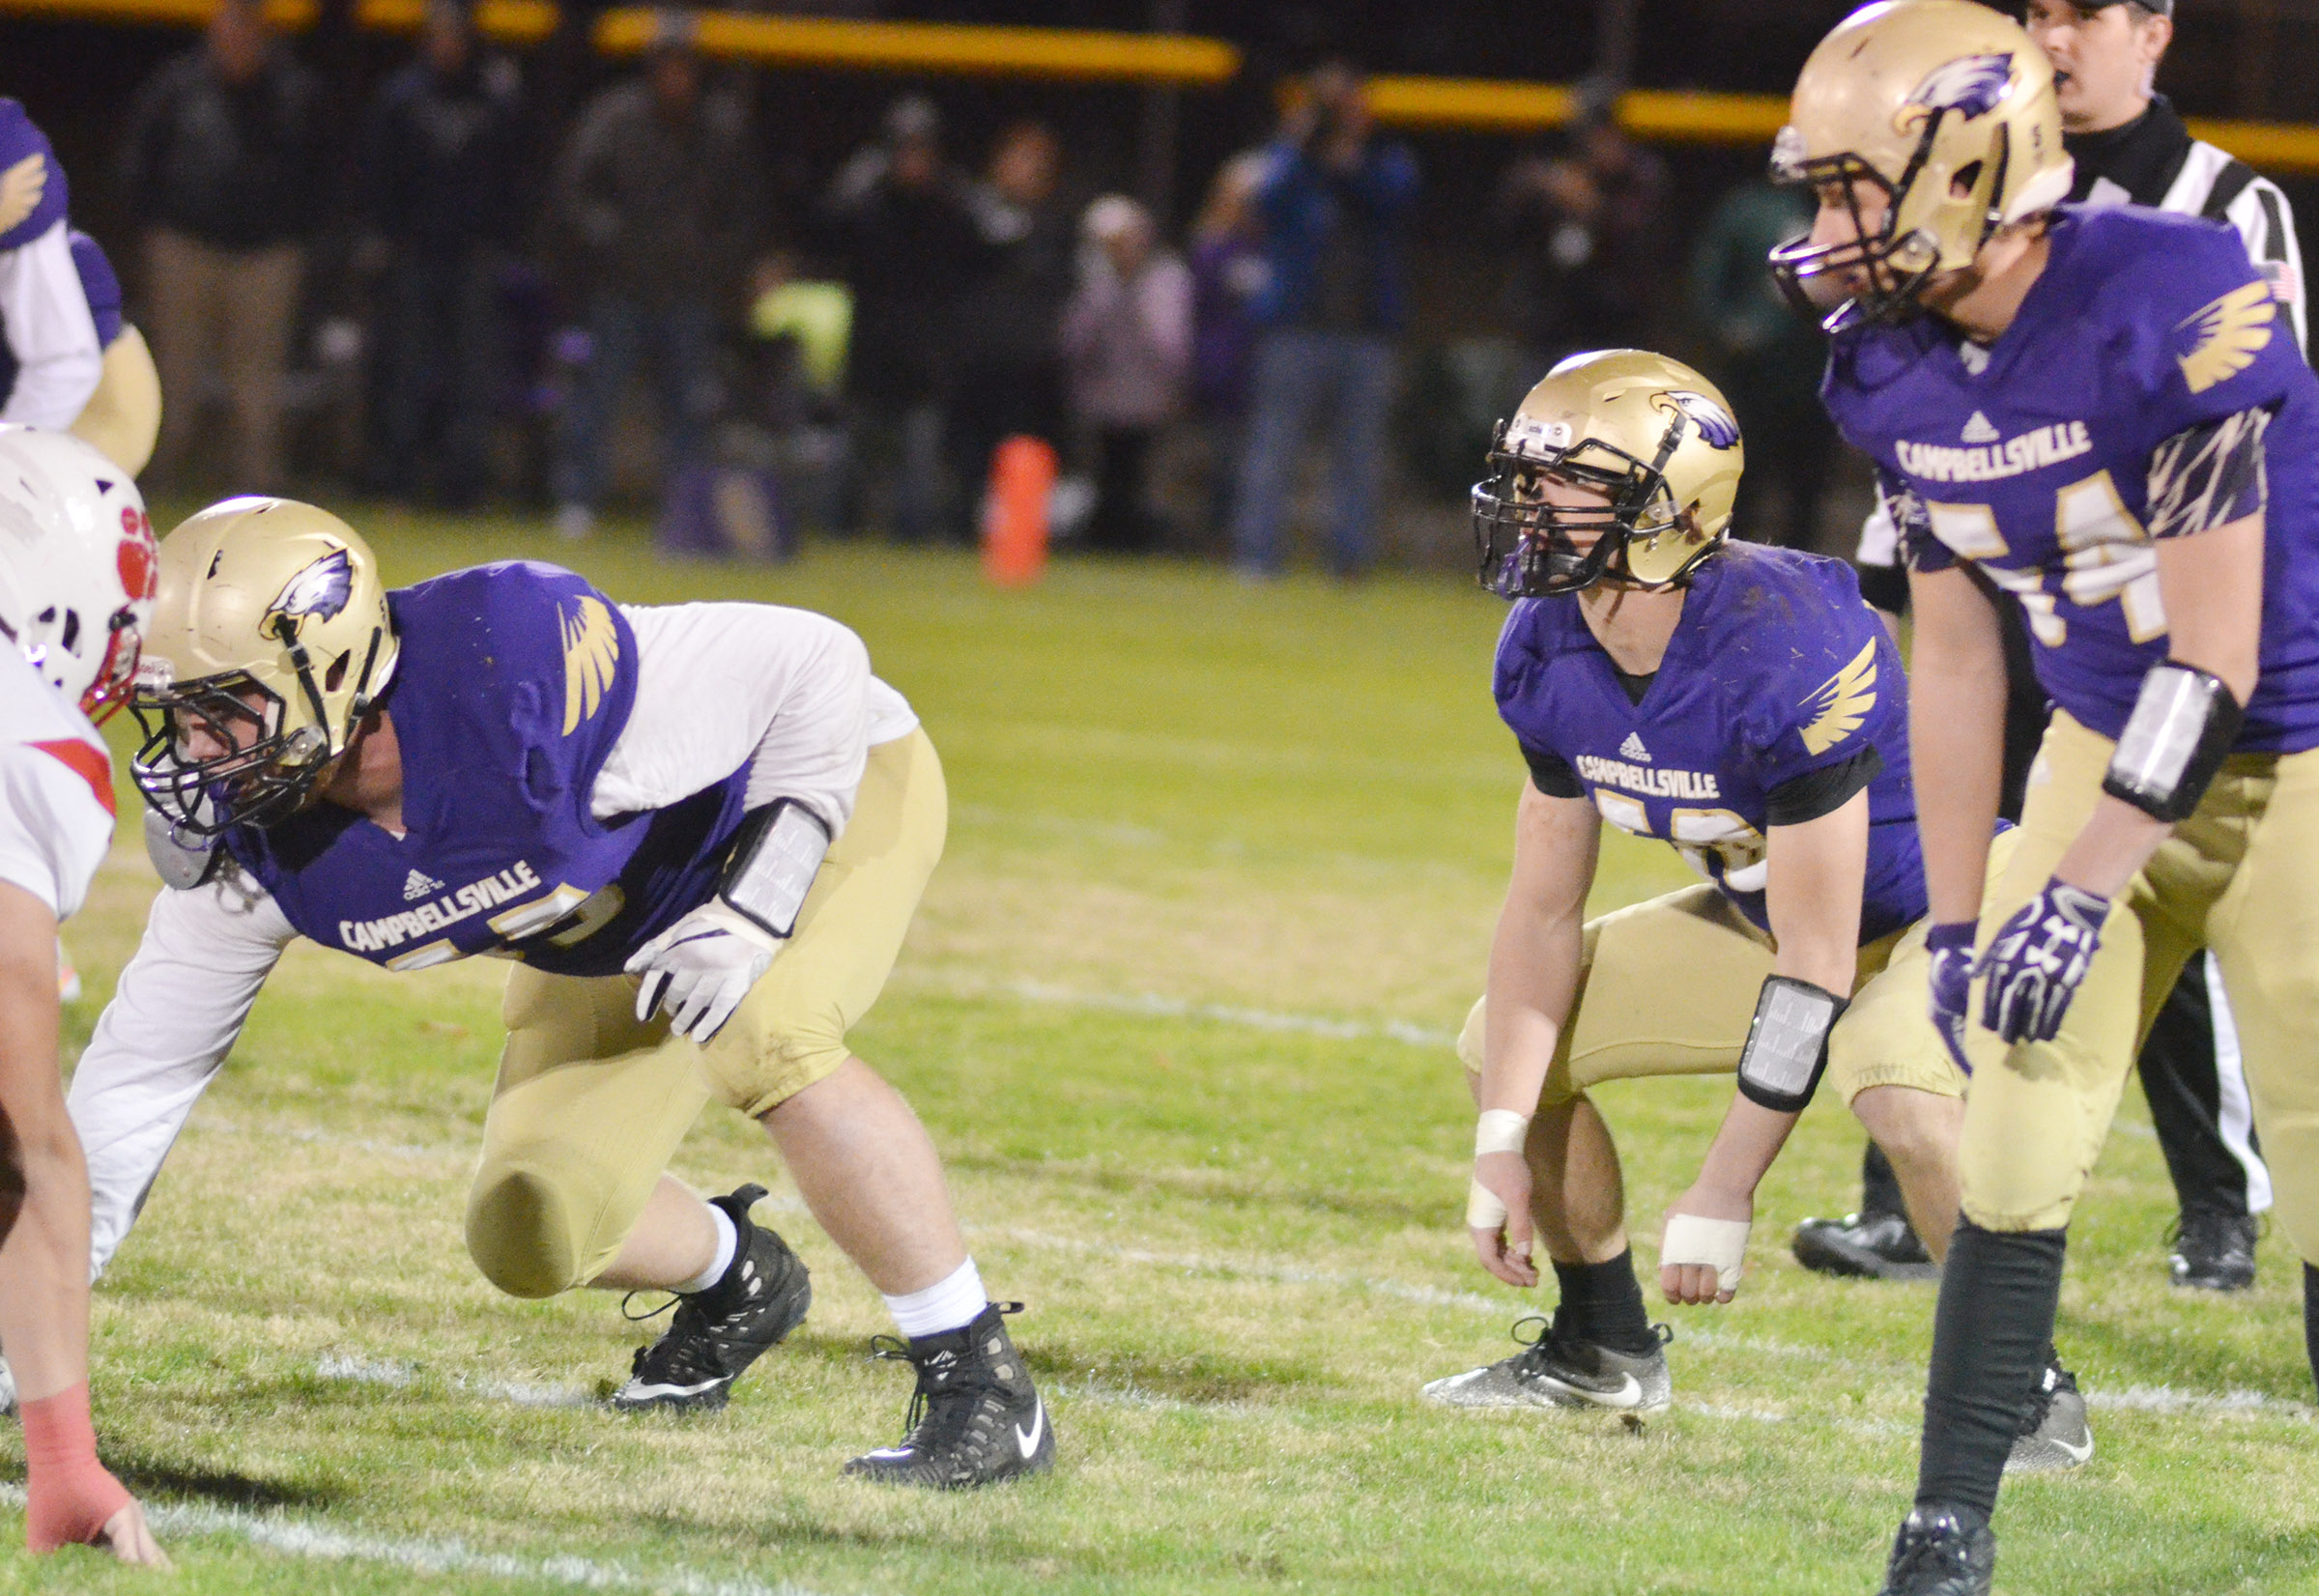 From left, CHS juniors Lane Bottoms and Tristan Johnson and sophomore Devon Reardon get ready to tackle.